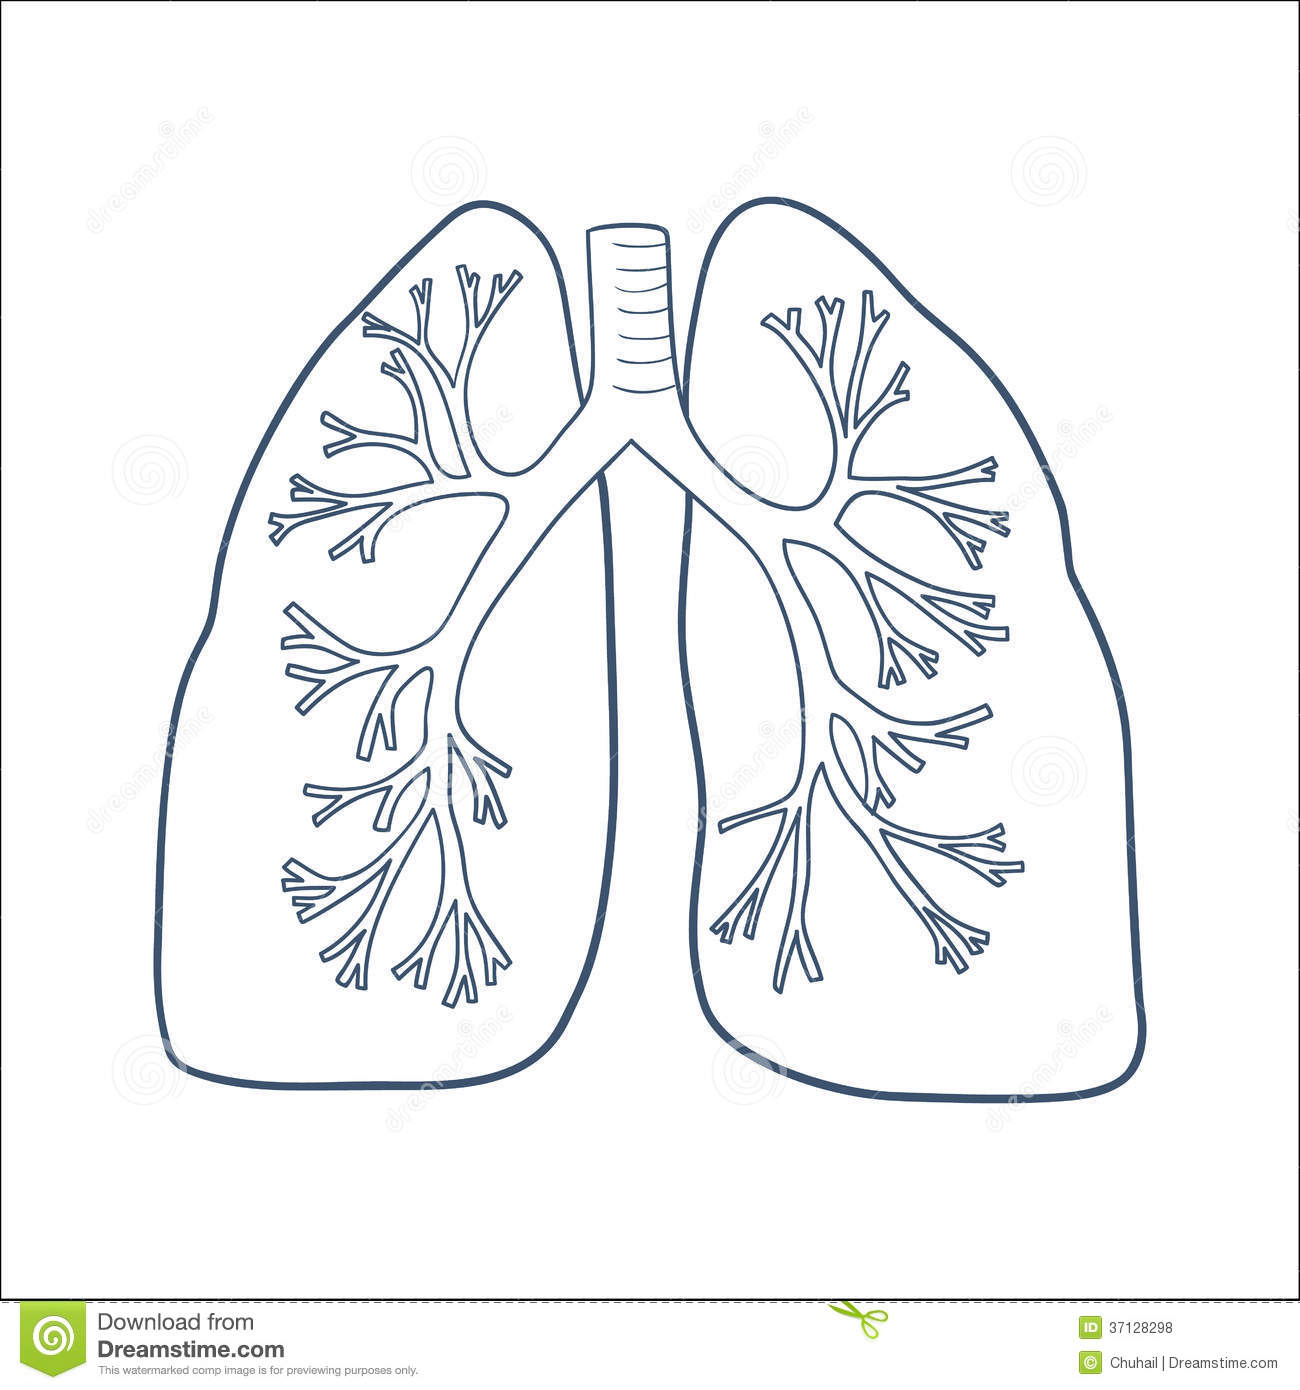 Anatomical Lungs Isolated On White. Royalty Free Stock Photos.